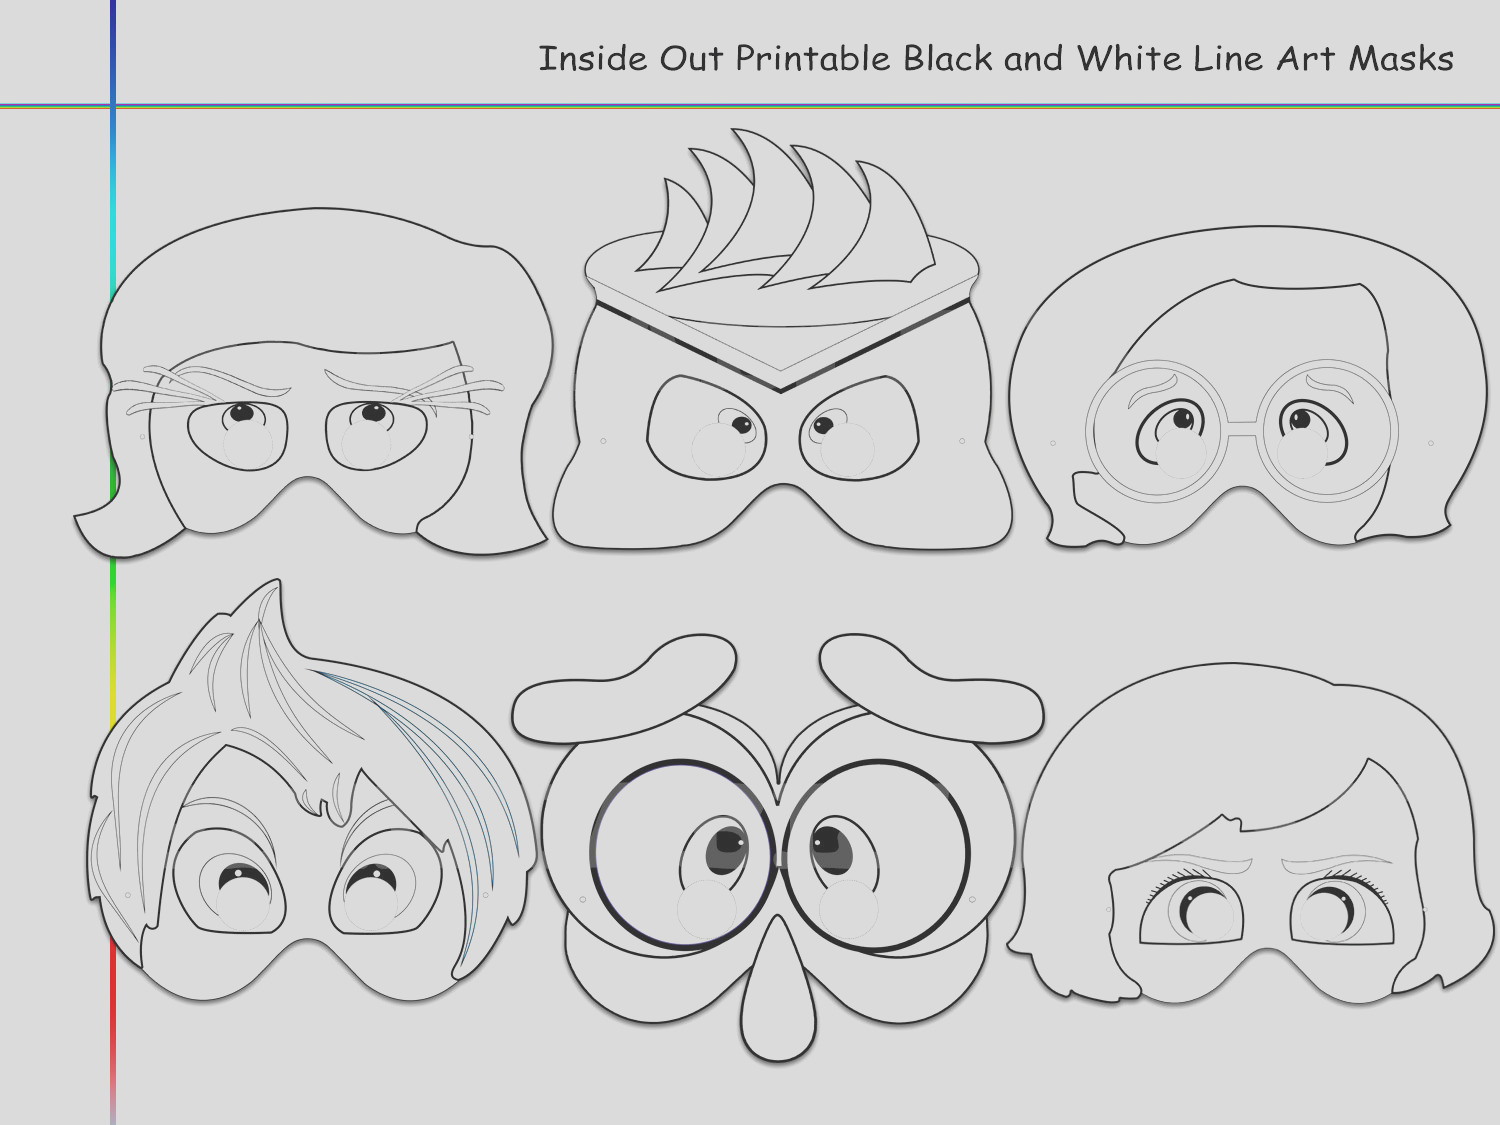 coloring pages inside out printable